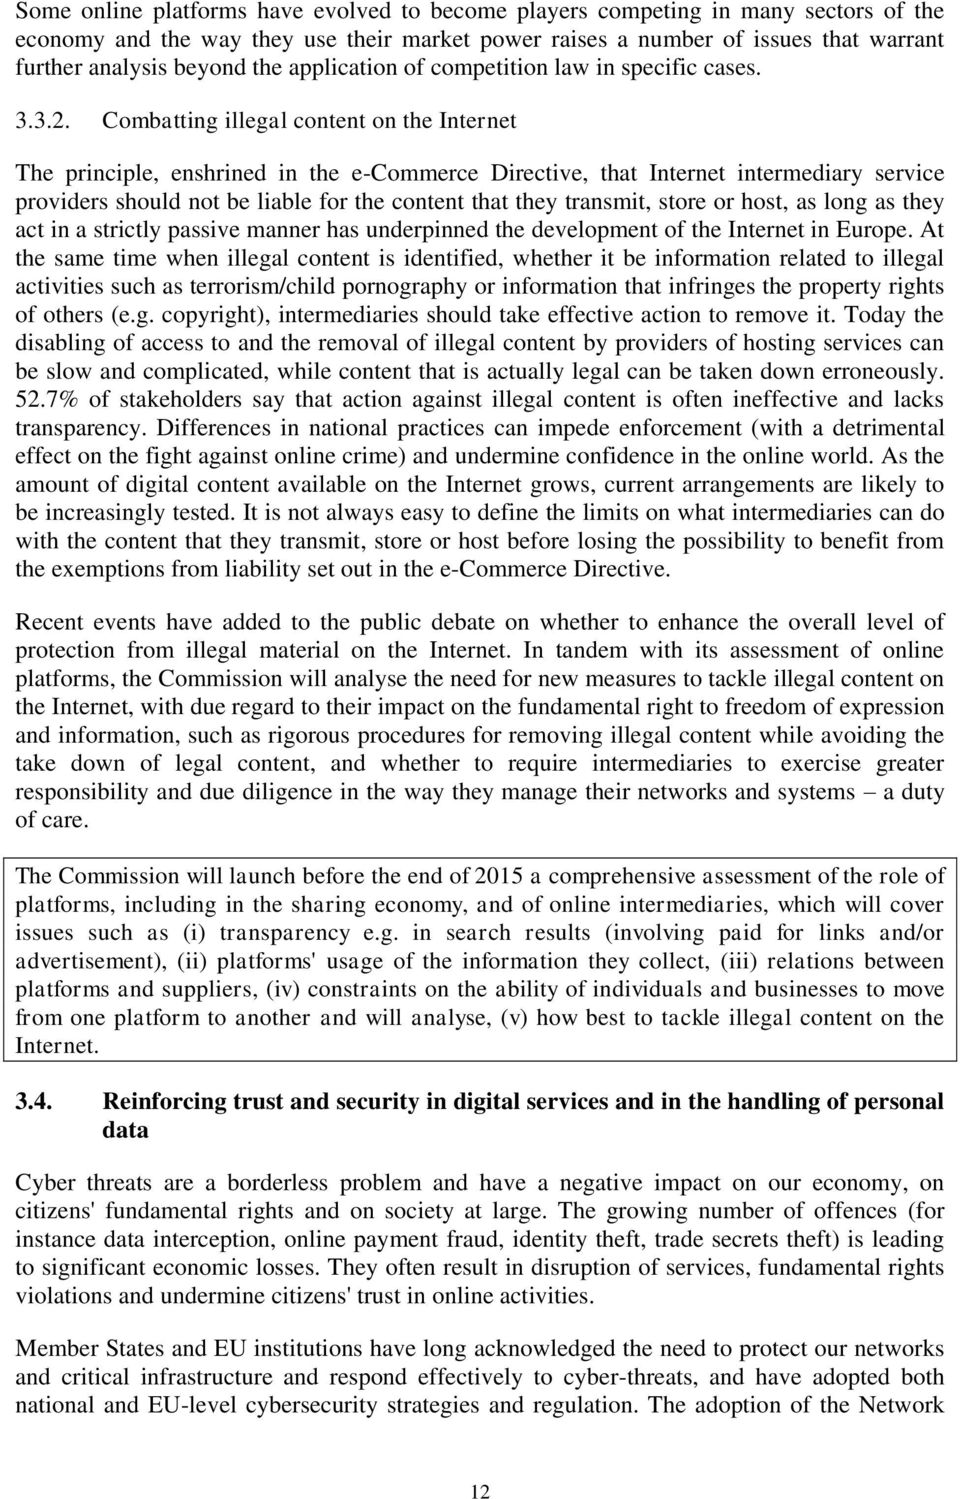 Combatting illegal content on the Internet The principle, enshrined in the e-commerce Directive, that Internet intermediary service providers should not be liable for the content that they transmit,